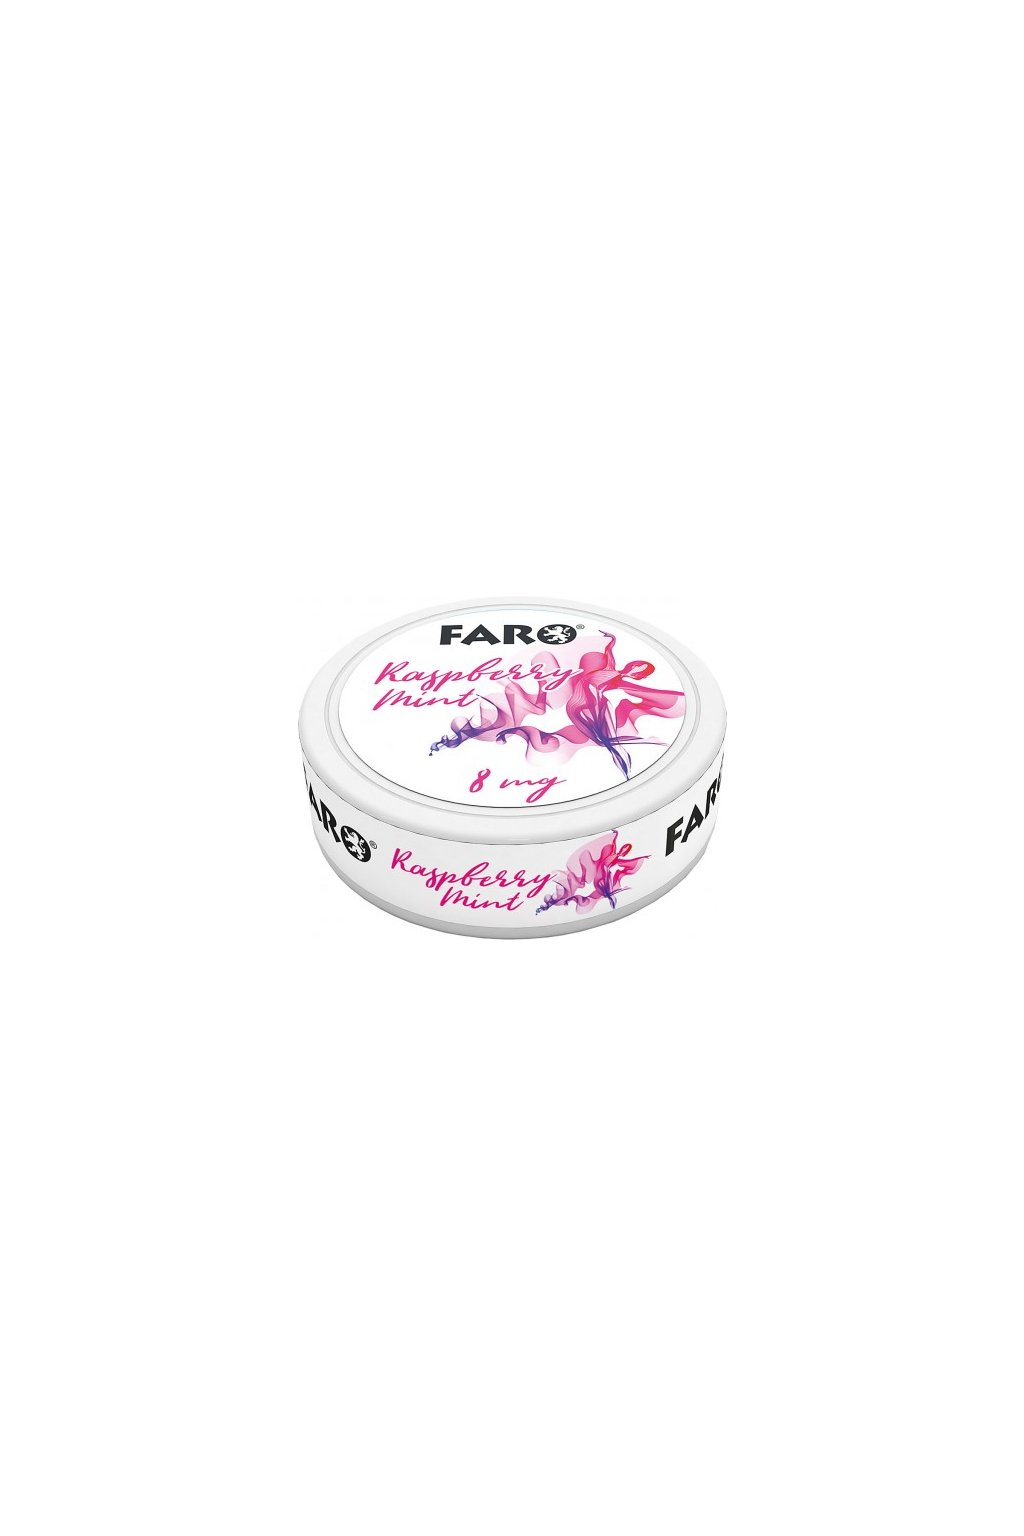 faro raspberry nikotinove sacky nordiction